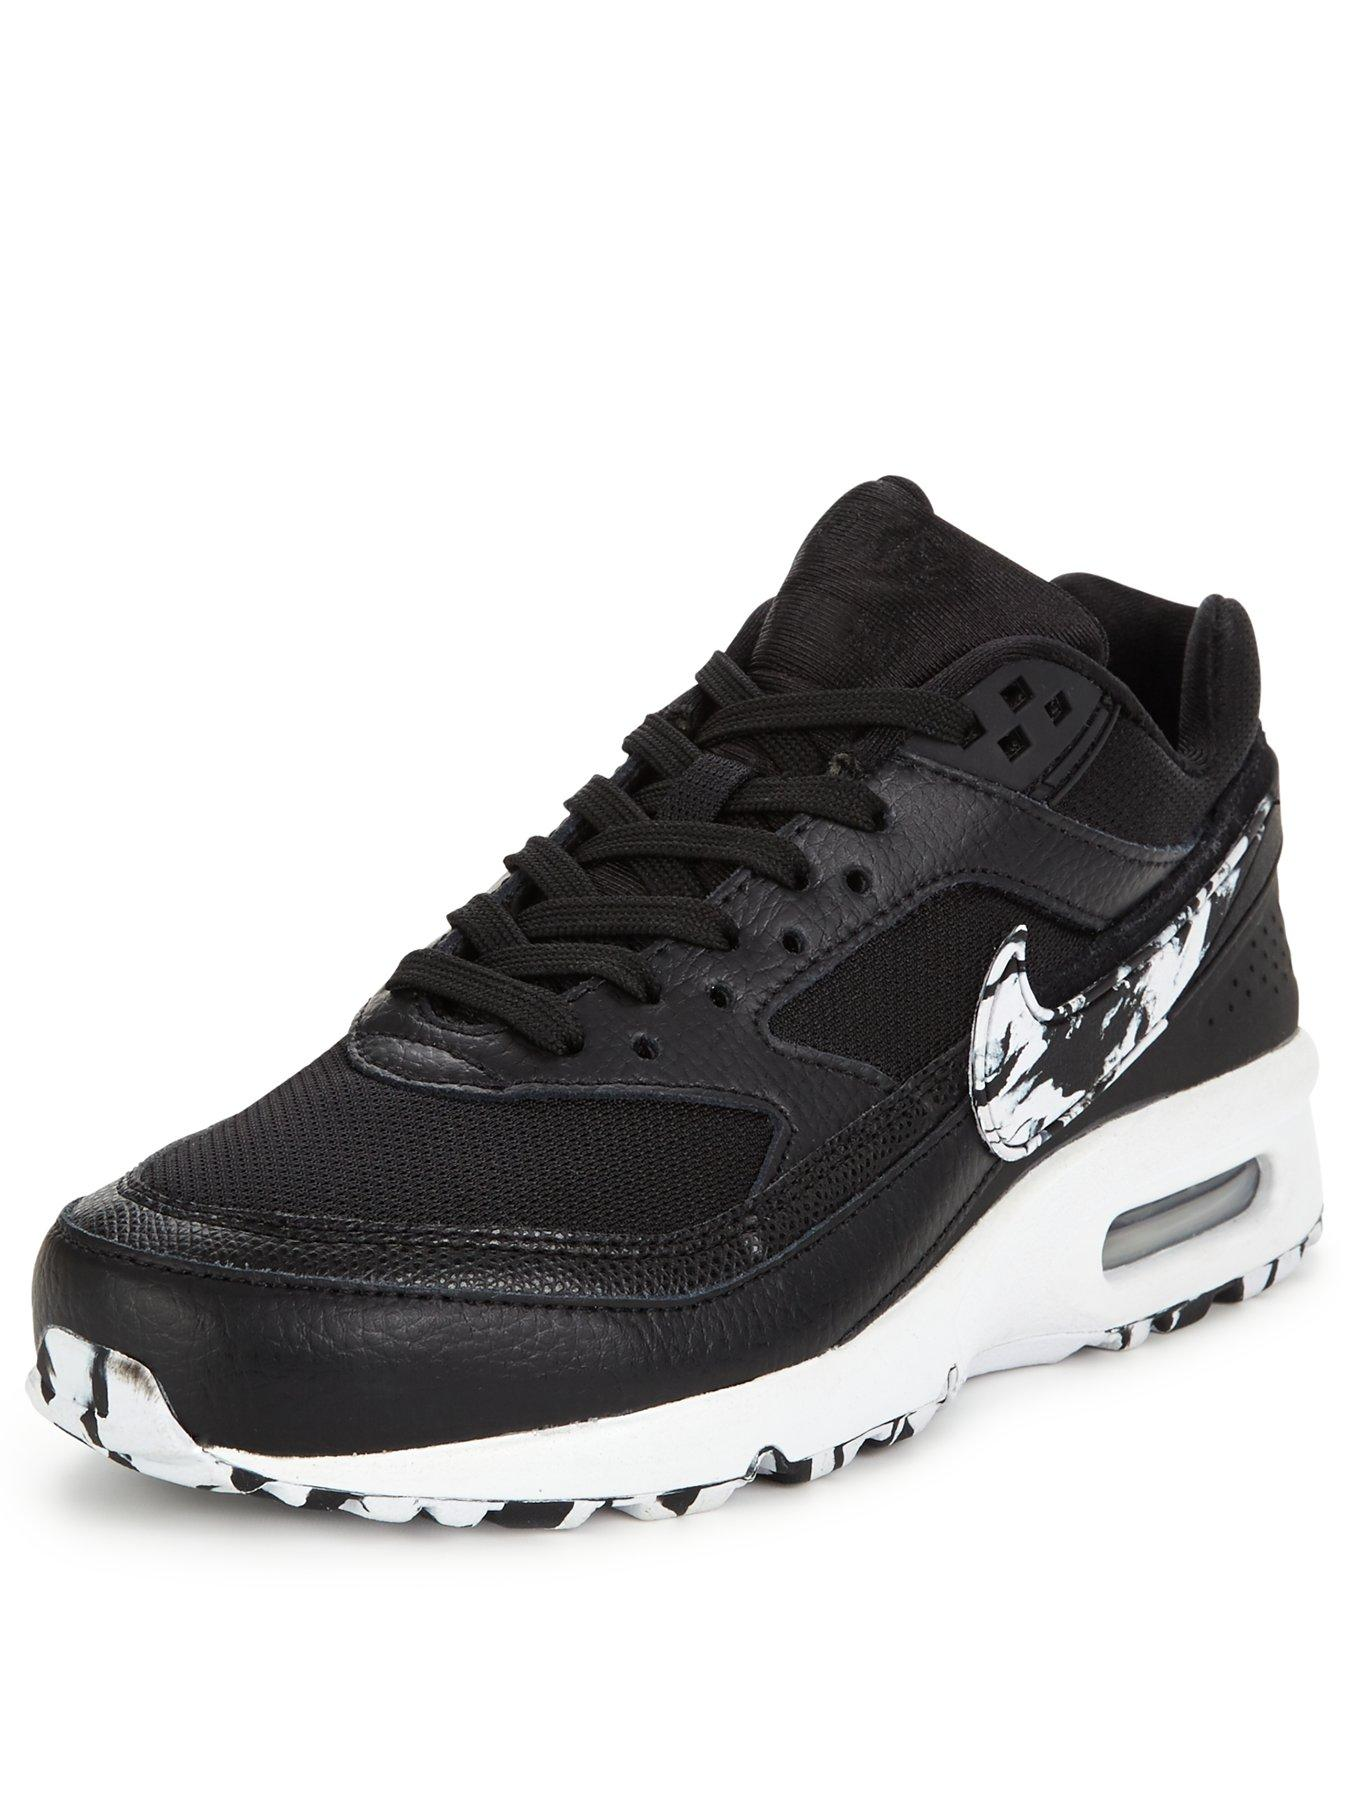 nike air max bw black